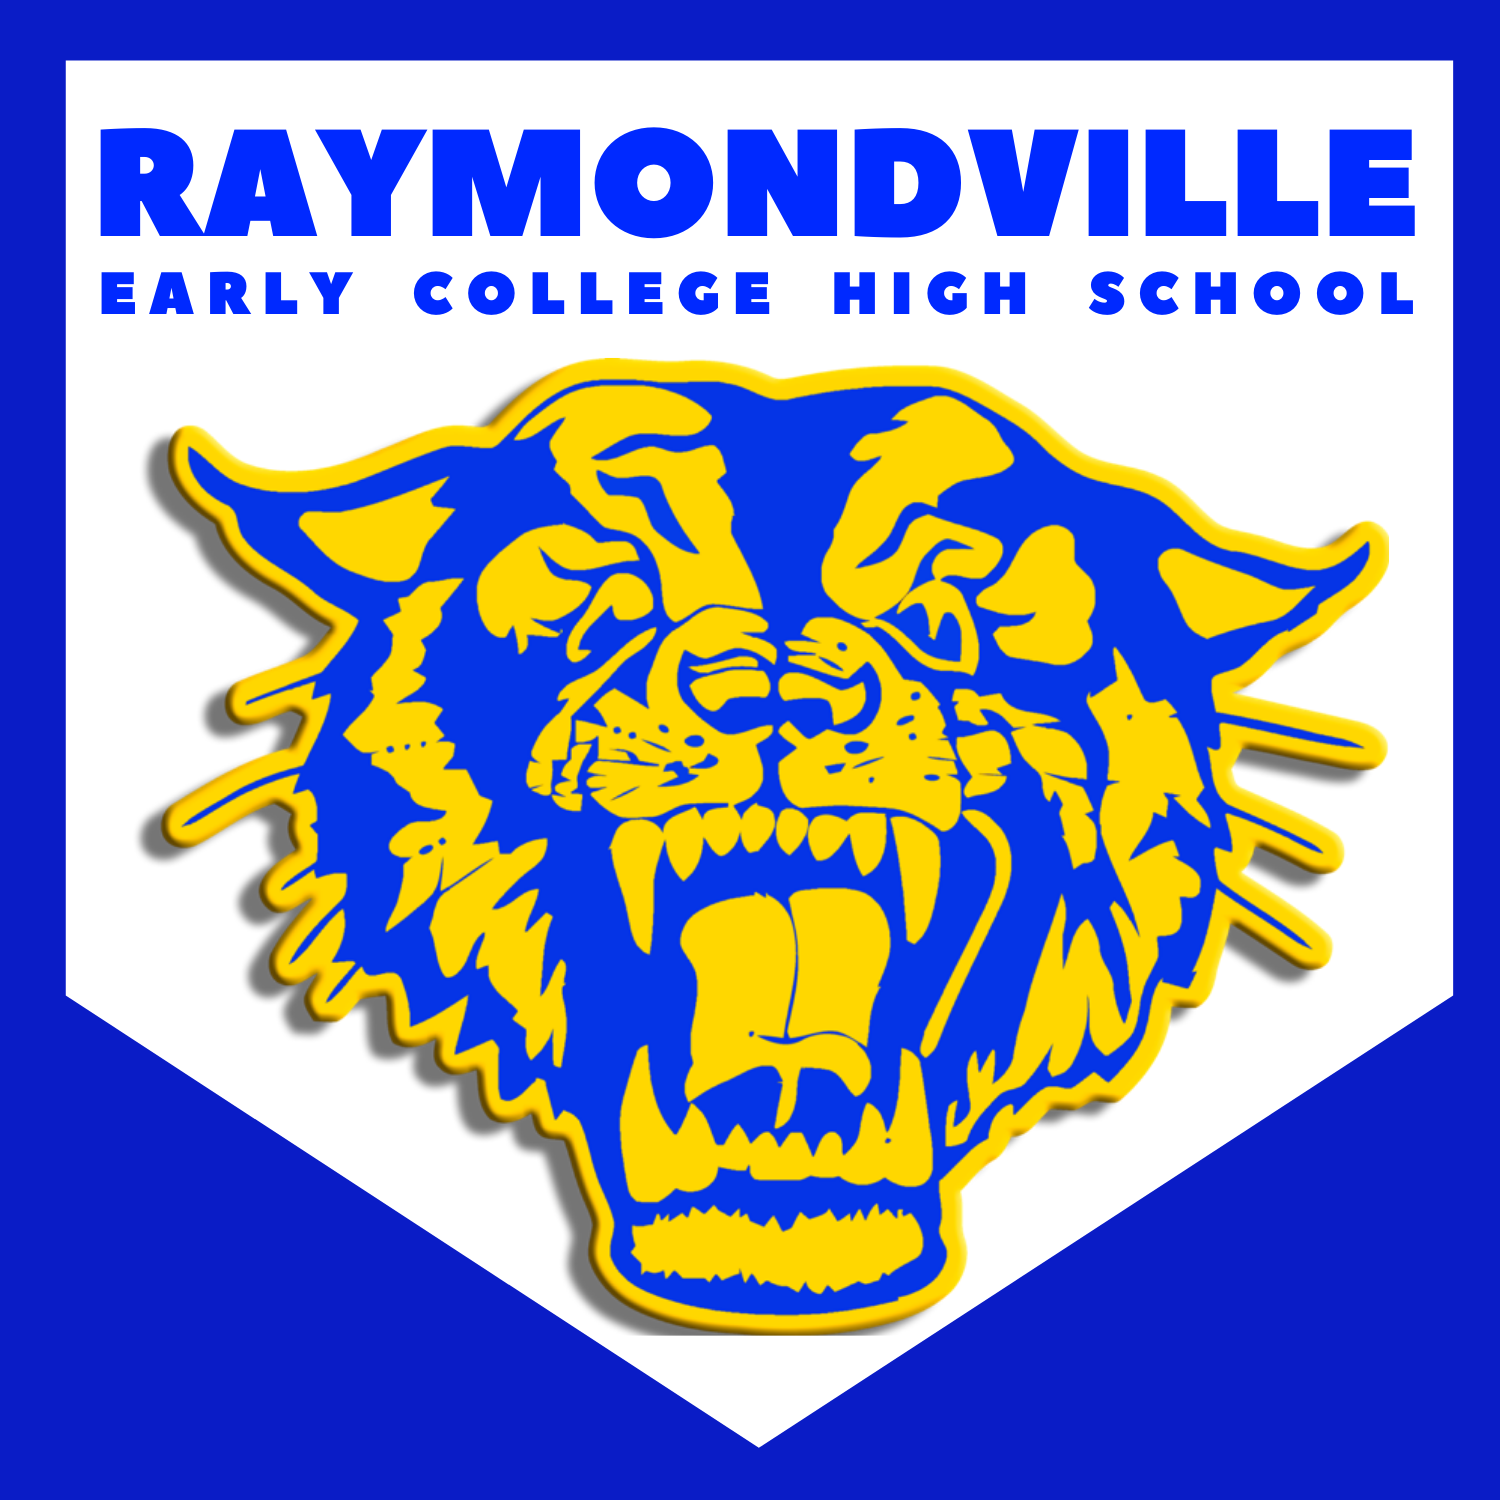 RAYMONDVILLE EARLY COLLEGE HIGH SCHOOL